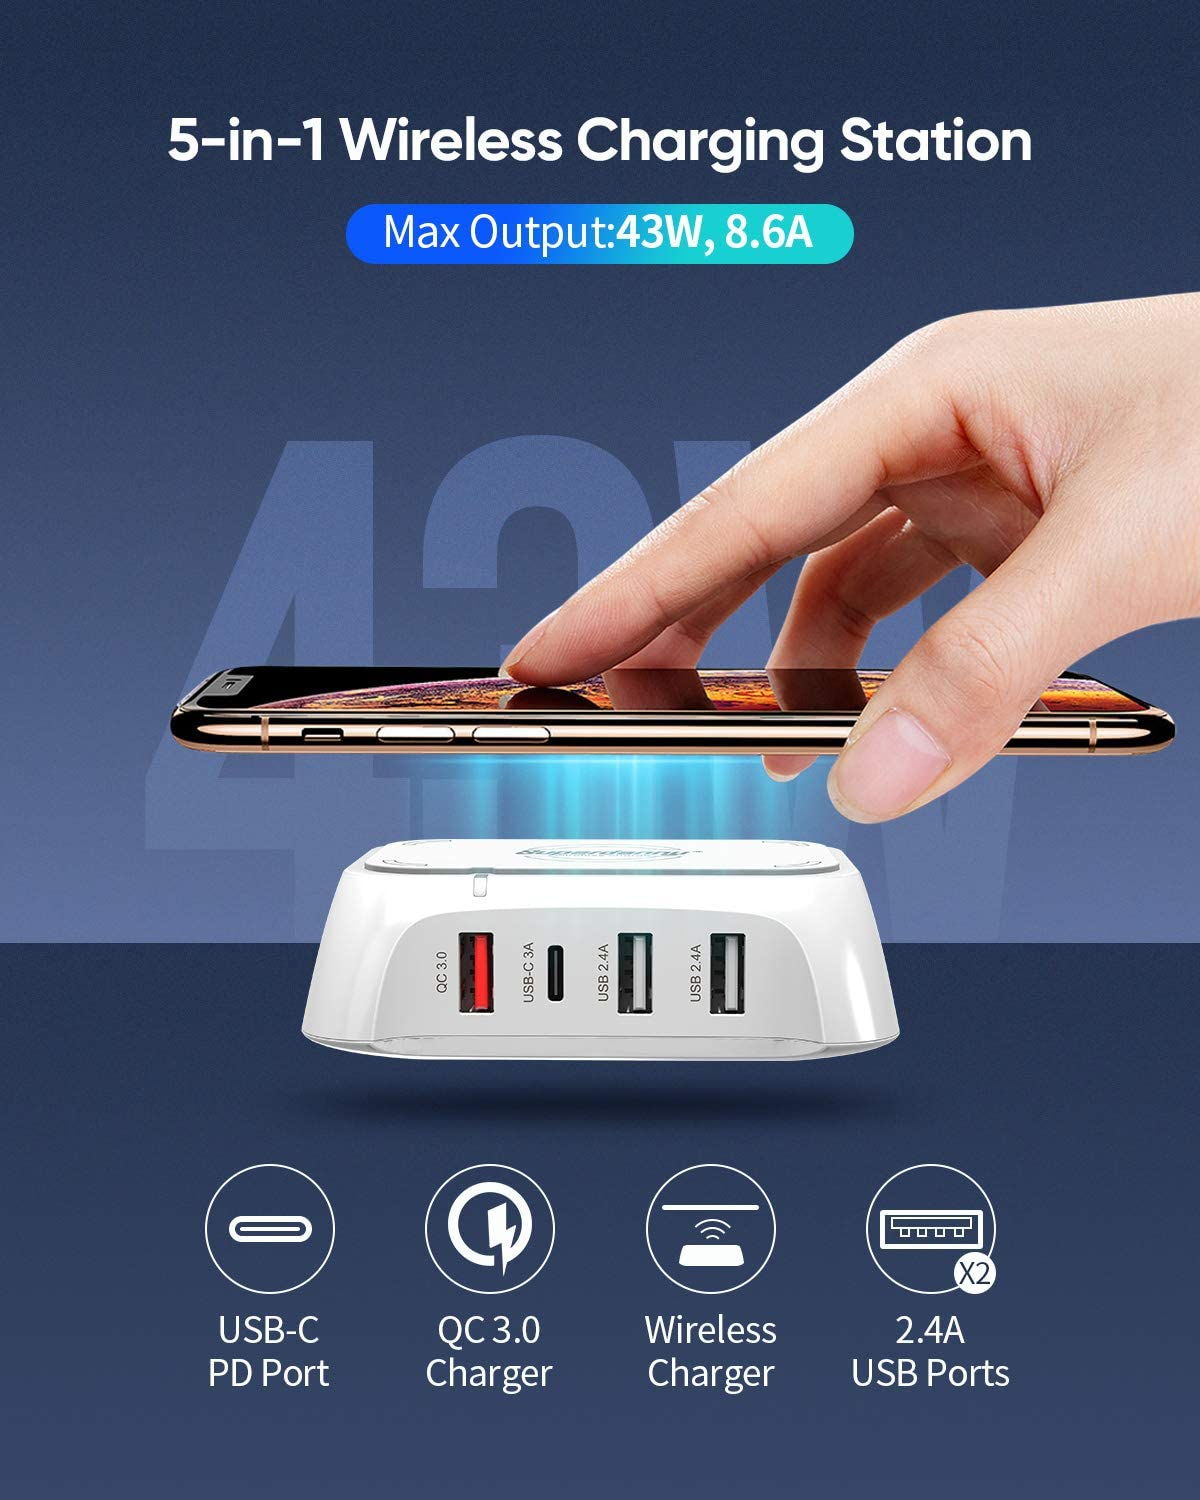 Multifunctional Desktop USB Charge Hub for 5 Devices Simultaneously up to 43W //8.6A 100-240V for Home Office SUPERDANNY USB C Charger with QC 3.0 Port and Wireless Charging Pad White